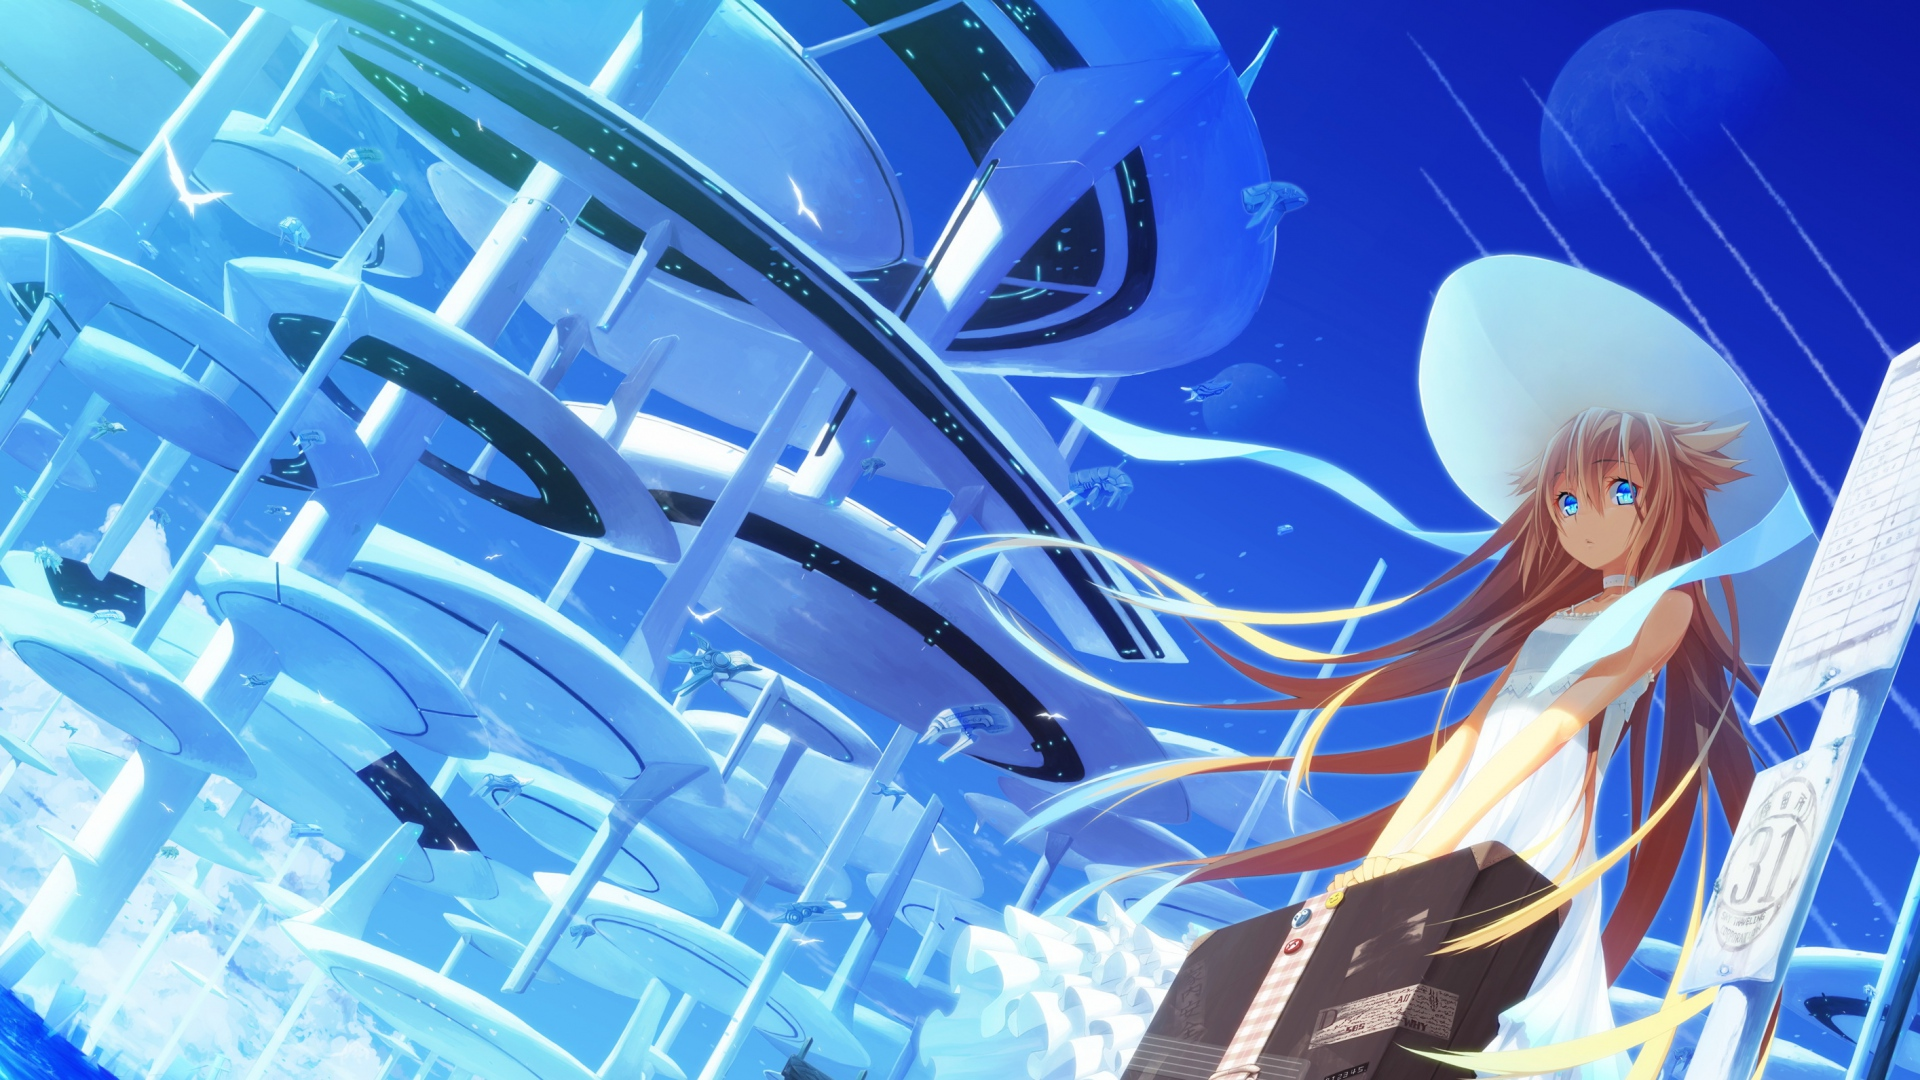 old anime wallpaper's (full-hd) - 15.05.14 file - indie db